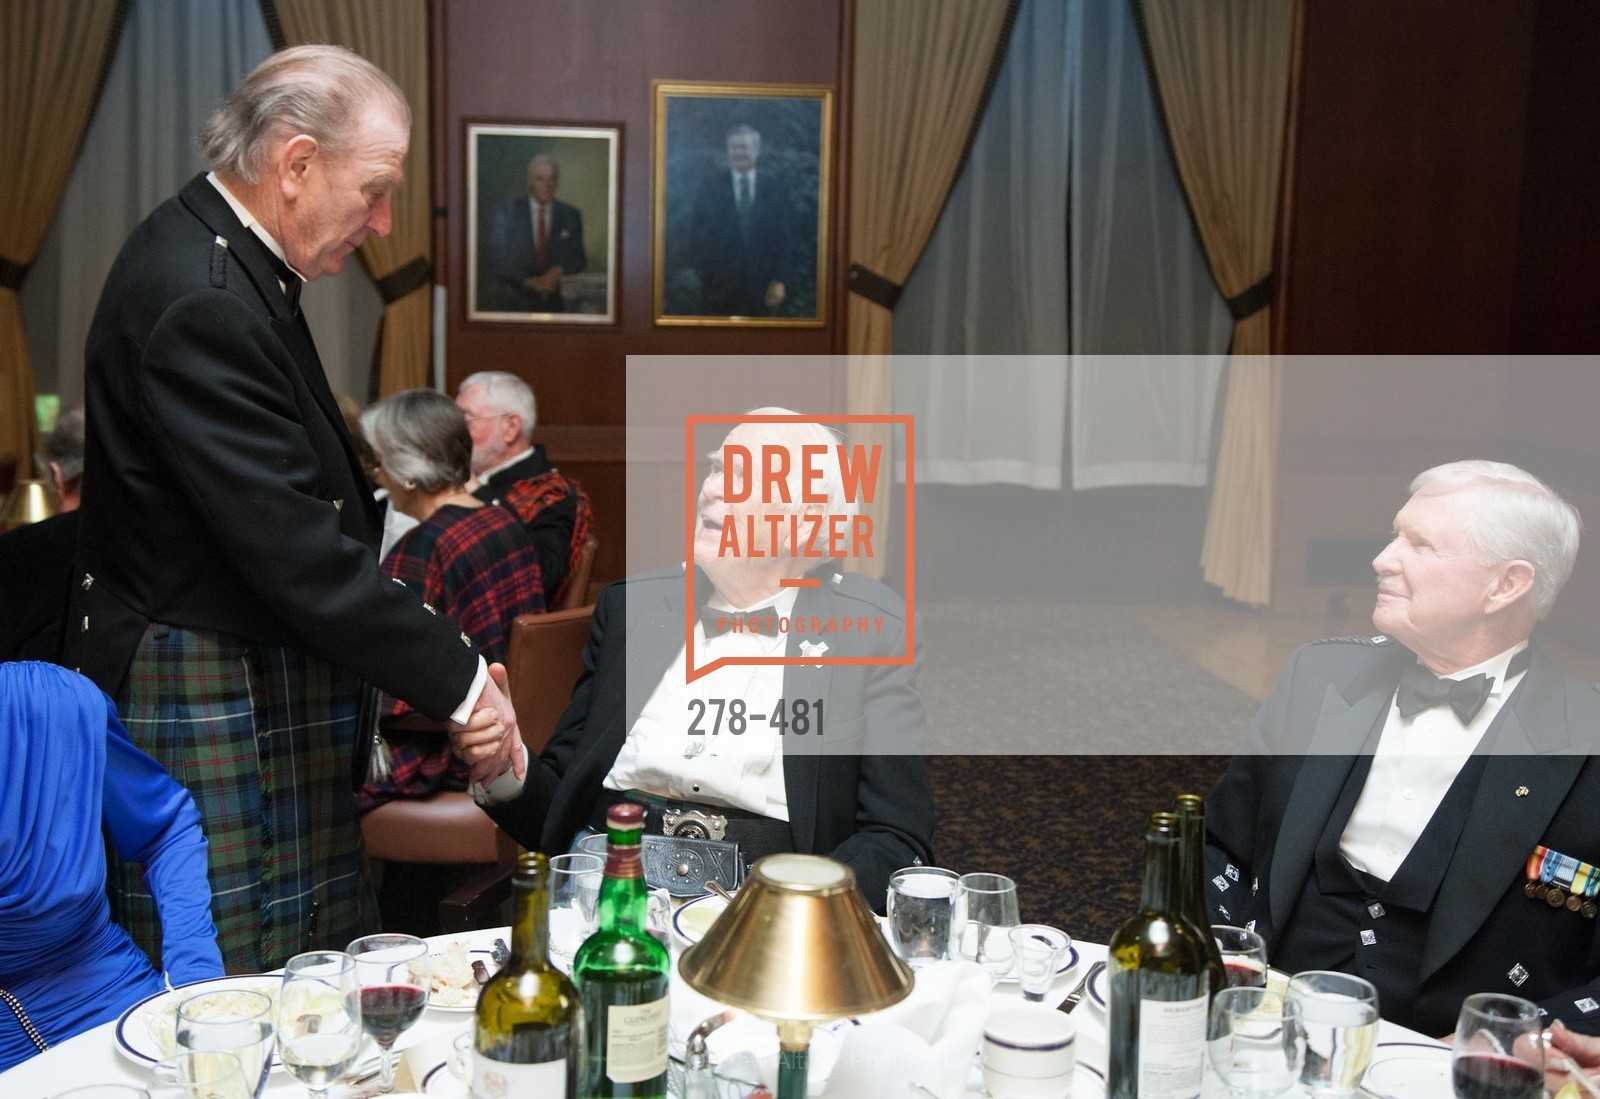 James Robertson, Casey McKibben, ST. ANDREW'S SOCIETY OF SAN FRANCISCO'S Traditional Burns Night Supper 2014, US. US, January 25th, 2014,Drew Altizer, Drew Altizer Photography, full-service agency, private events, San Francisco photographer, photographer california